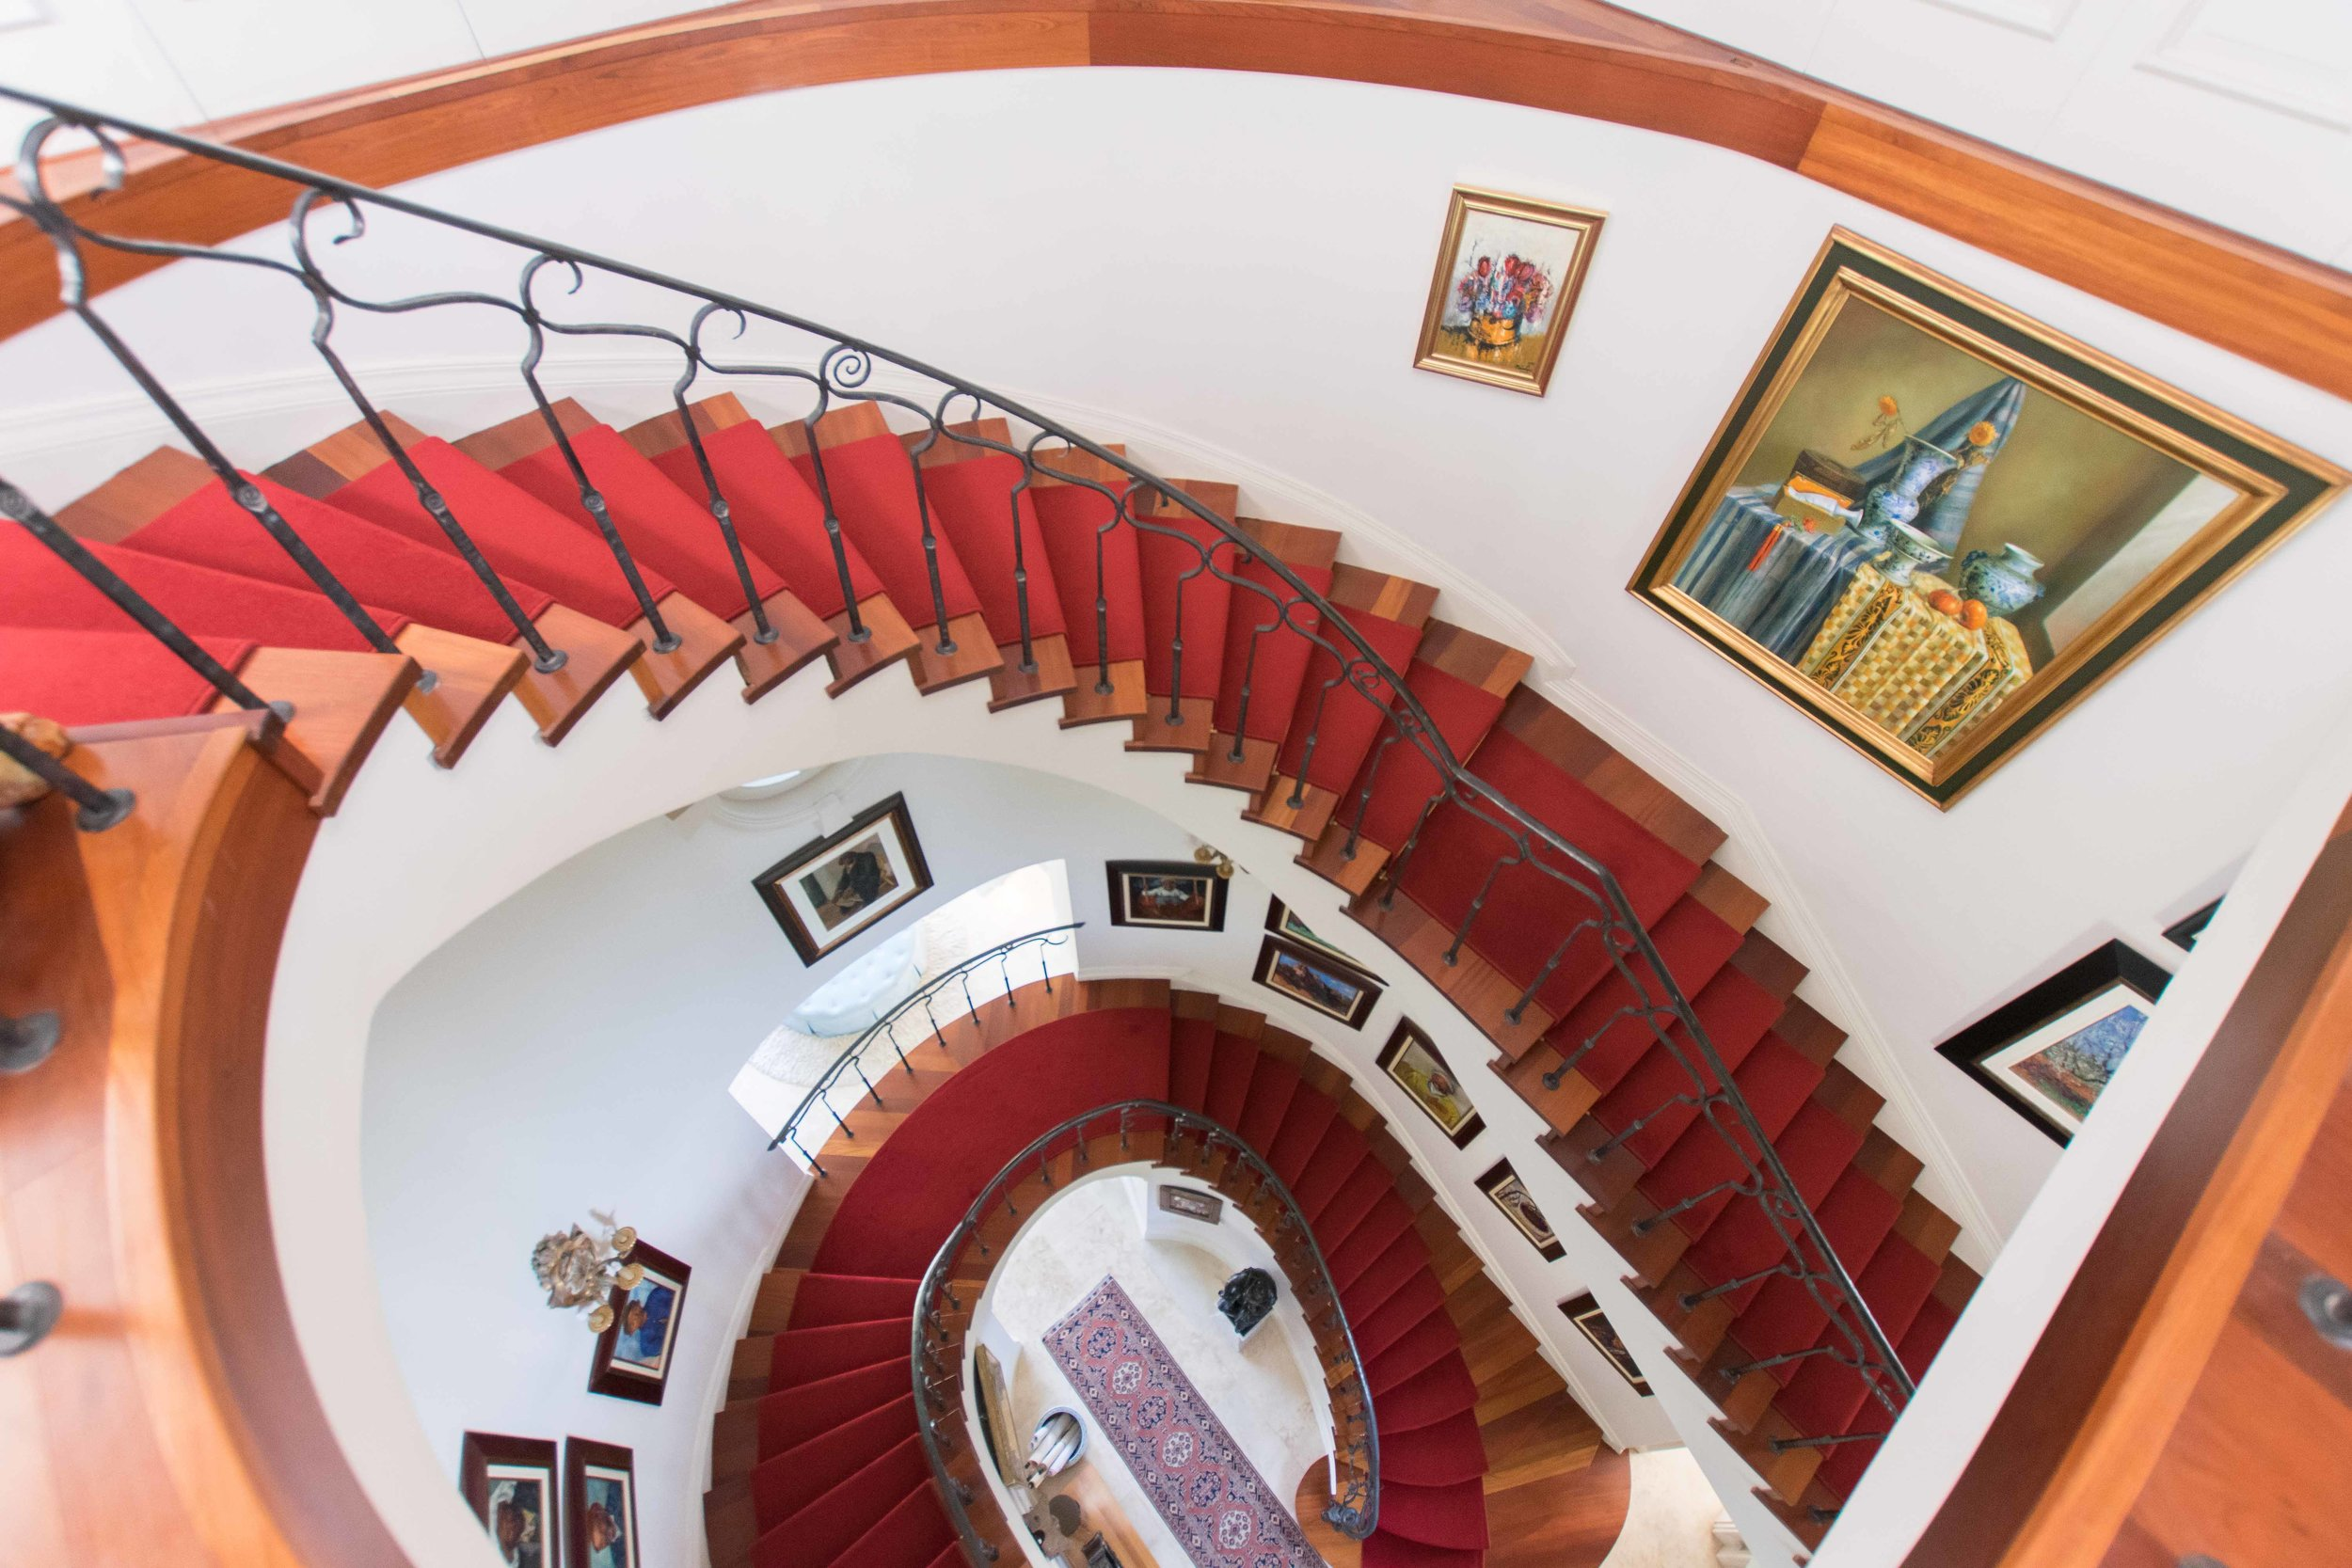 Staircase leading to rooms at 21 Nettleton